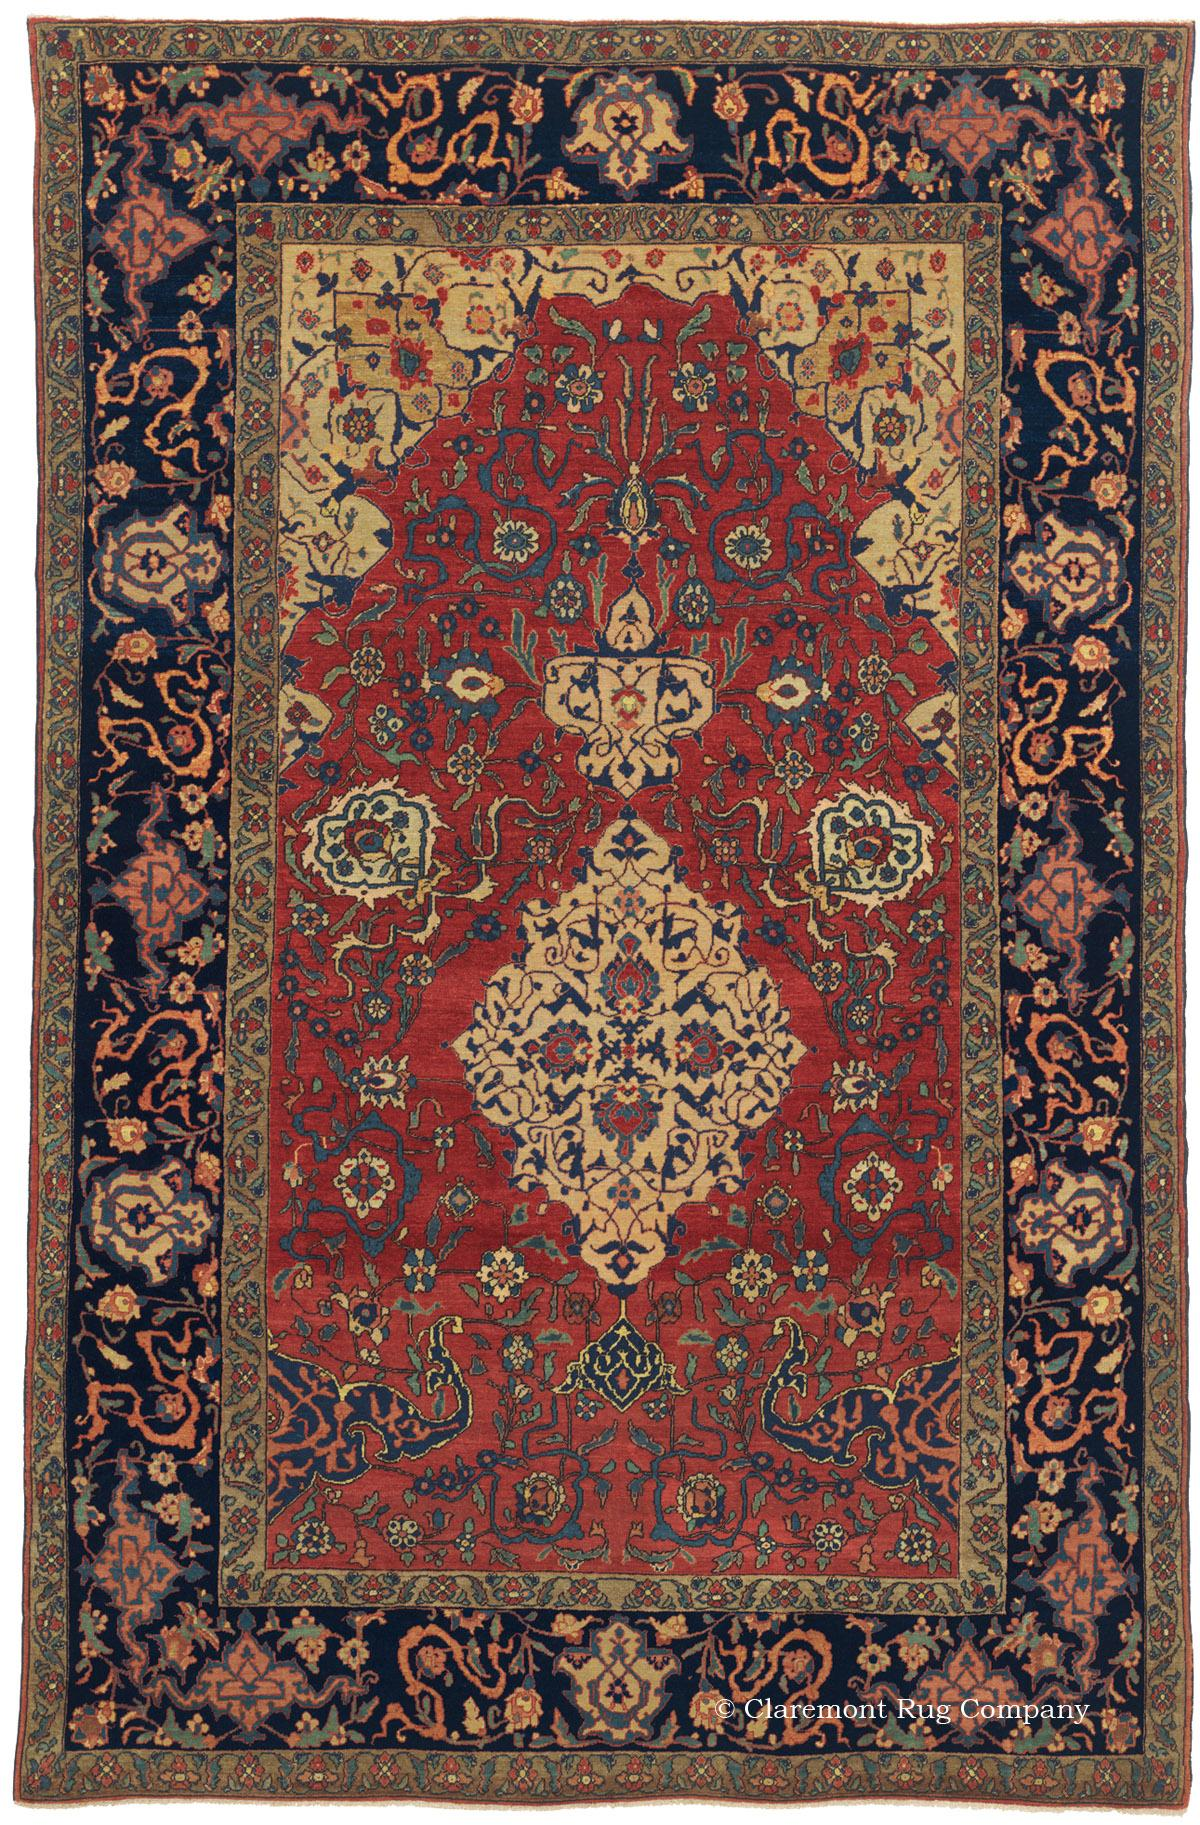 Antique Persian Rug Masterwork